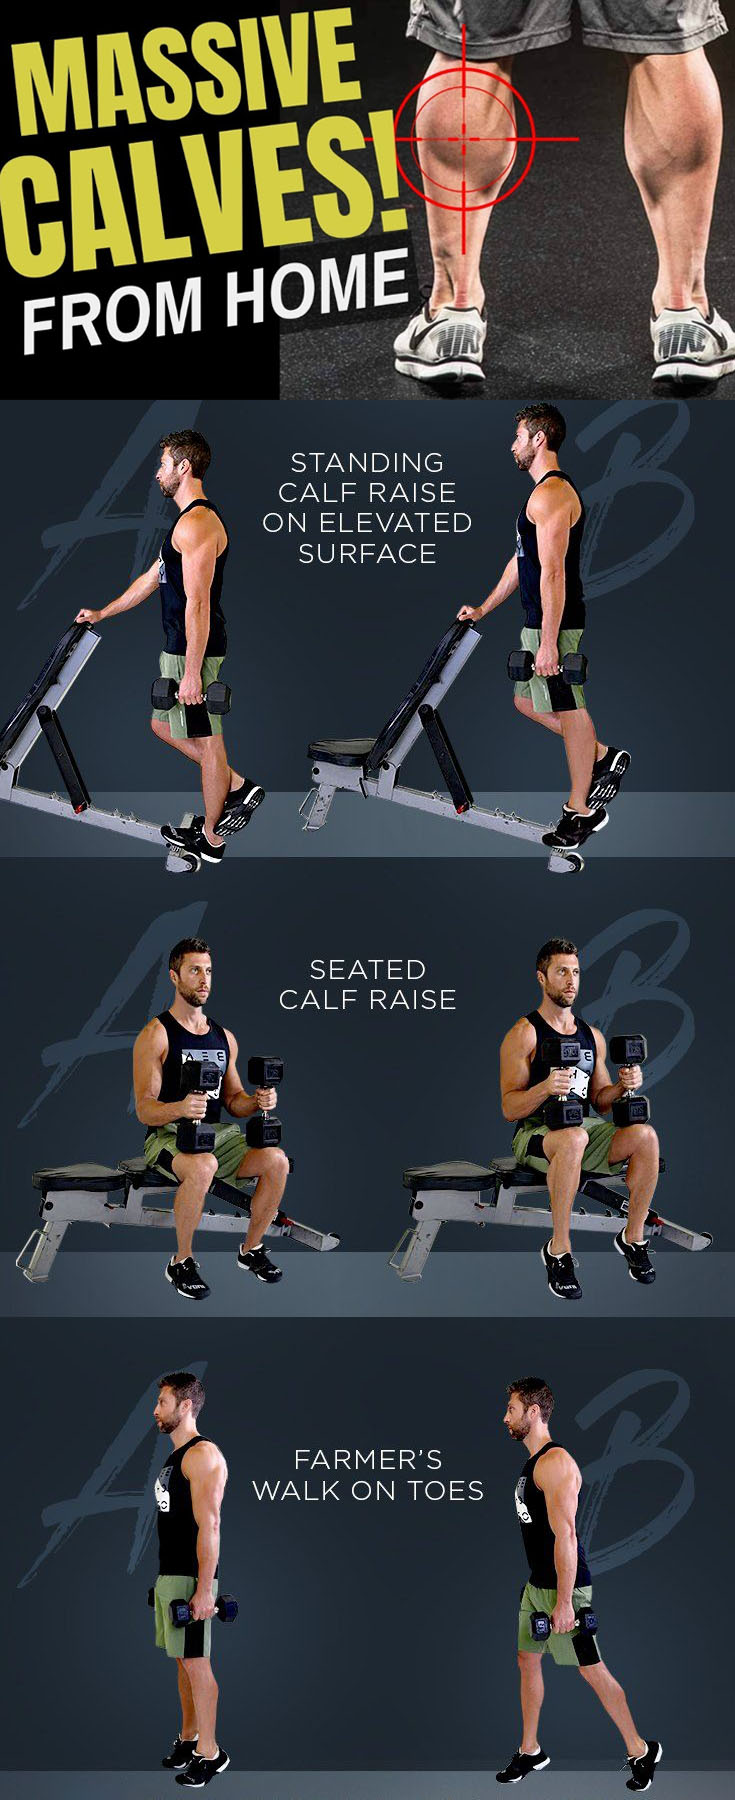 MASSIVE CALVES WORKOUT